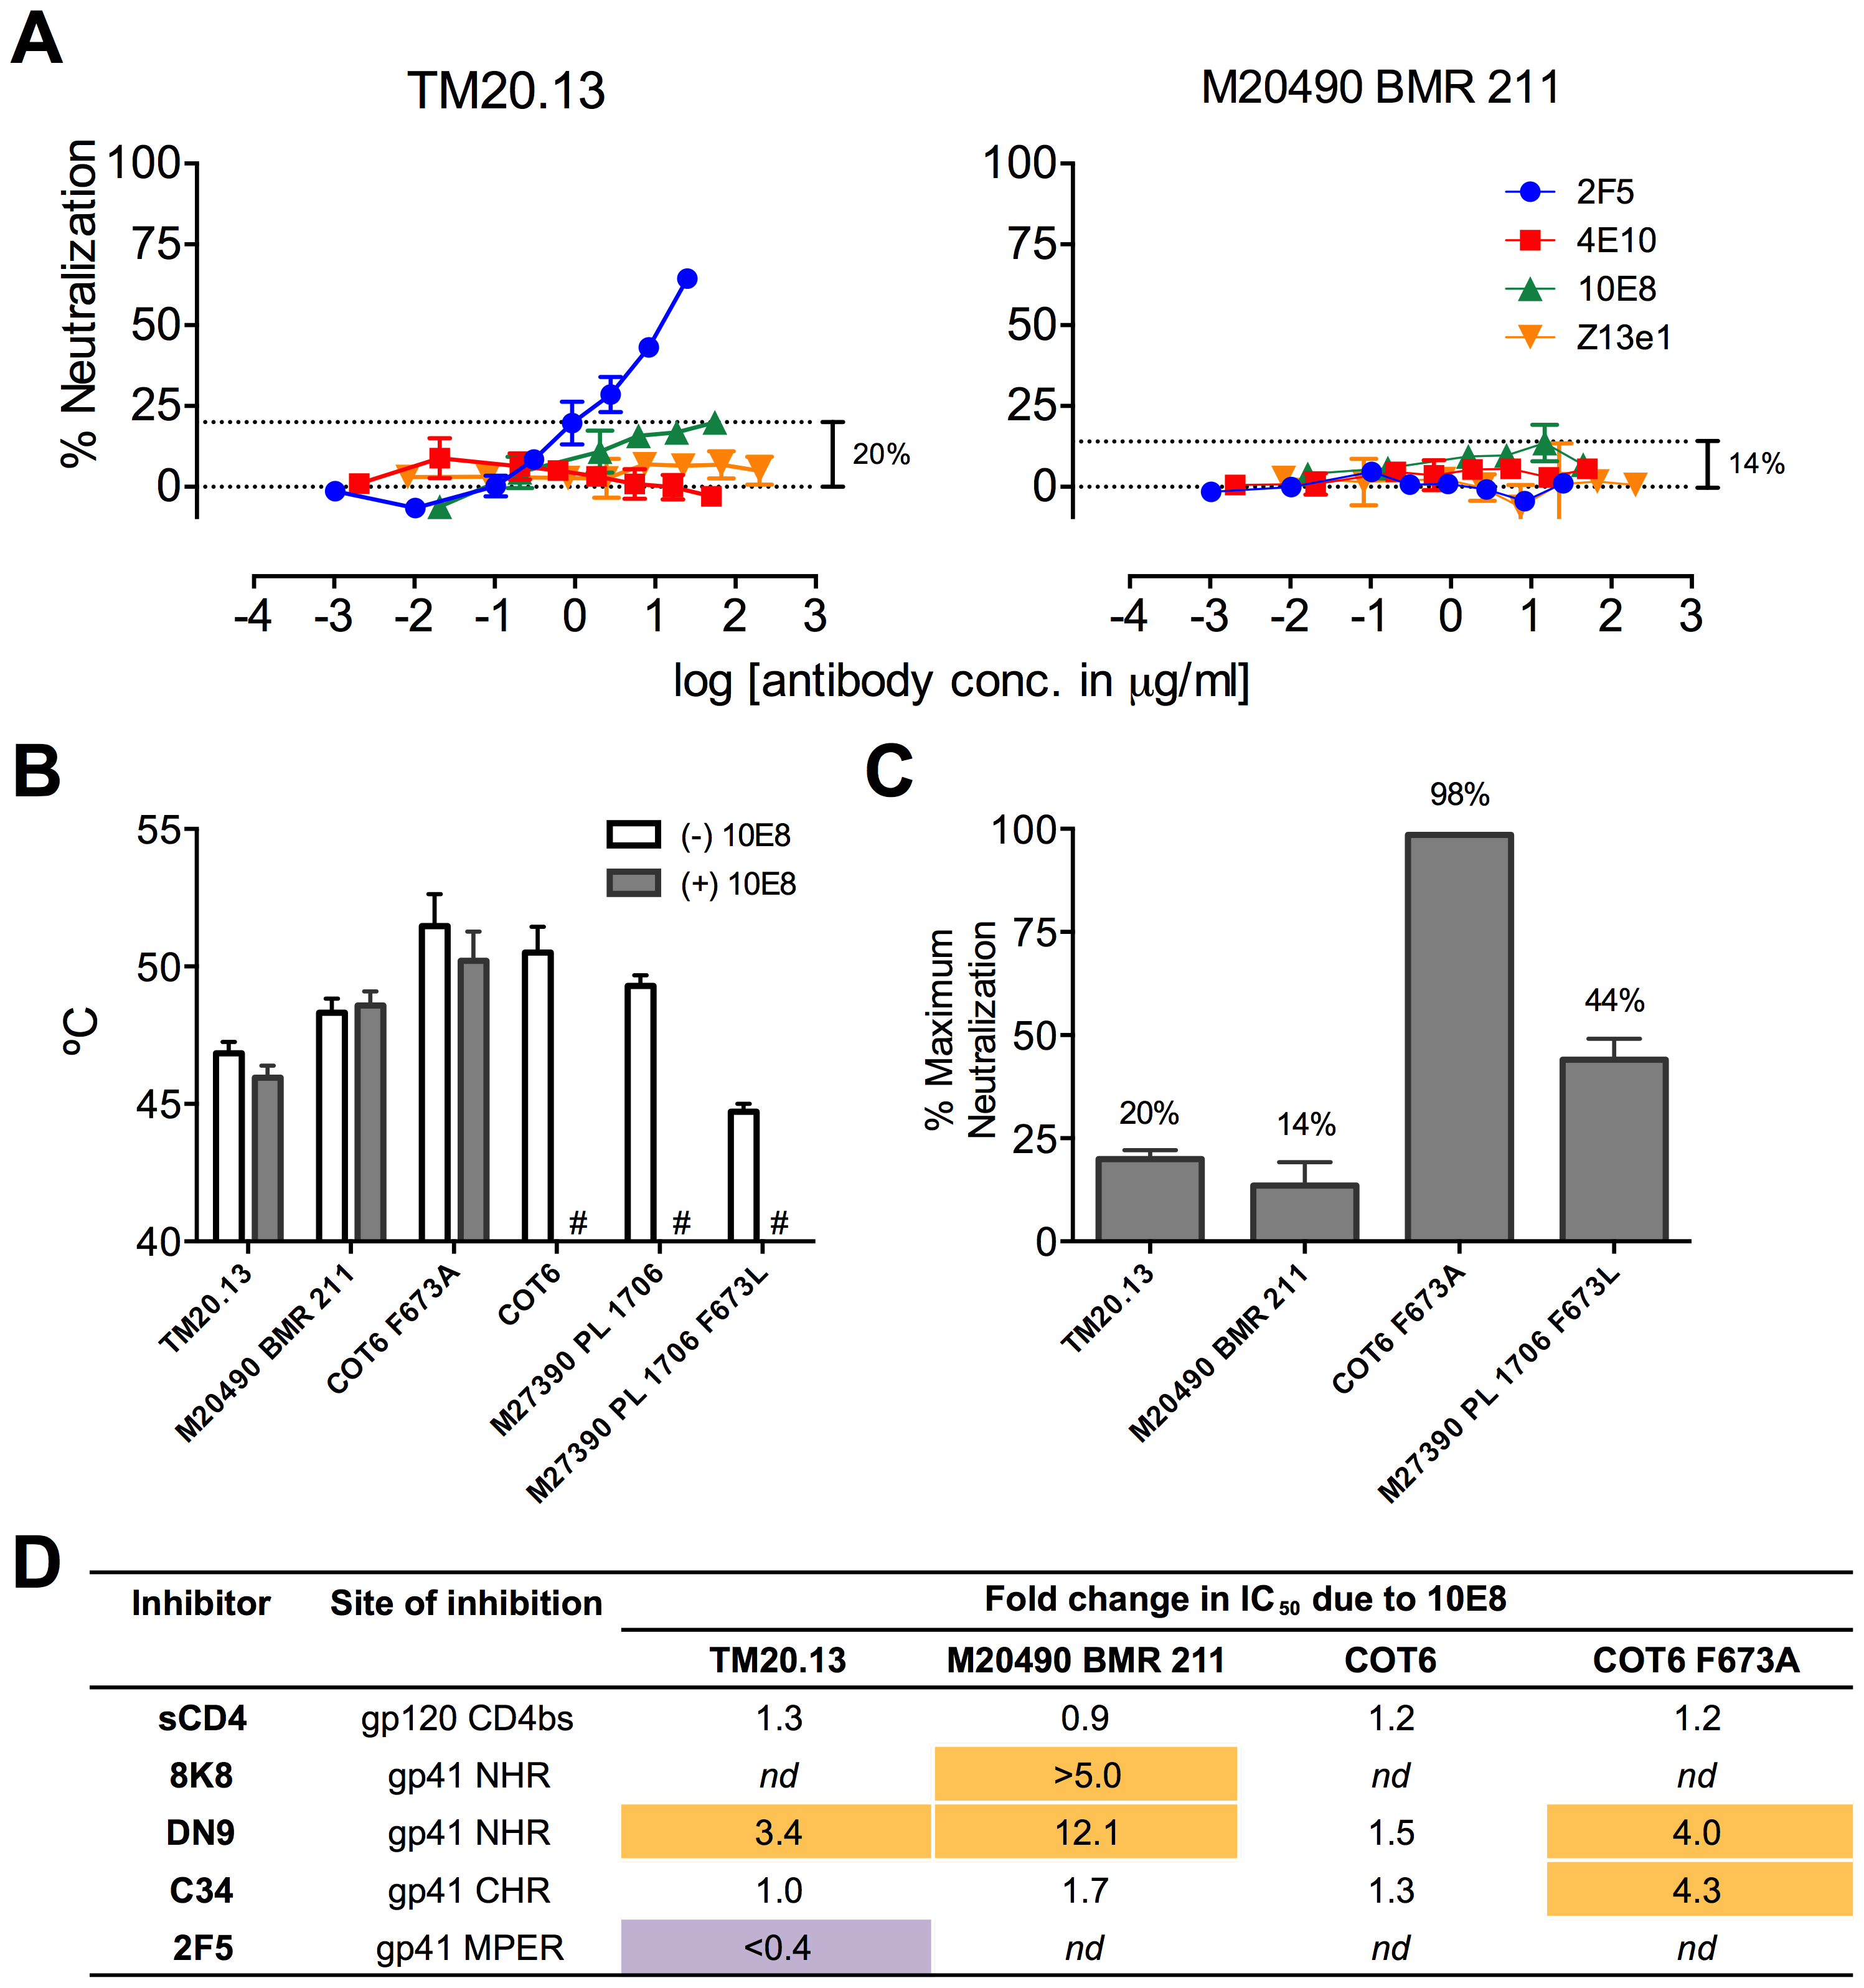 Functional effects of 10E8 on HIV-1 clade C variants including those with a naturally occurring L673 residue.